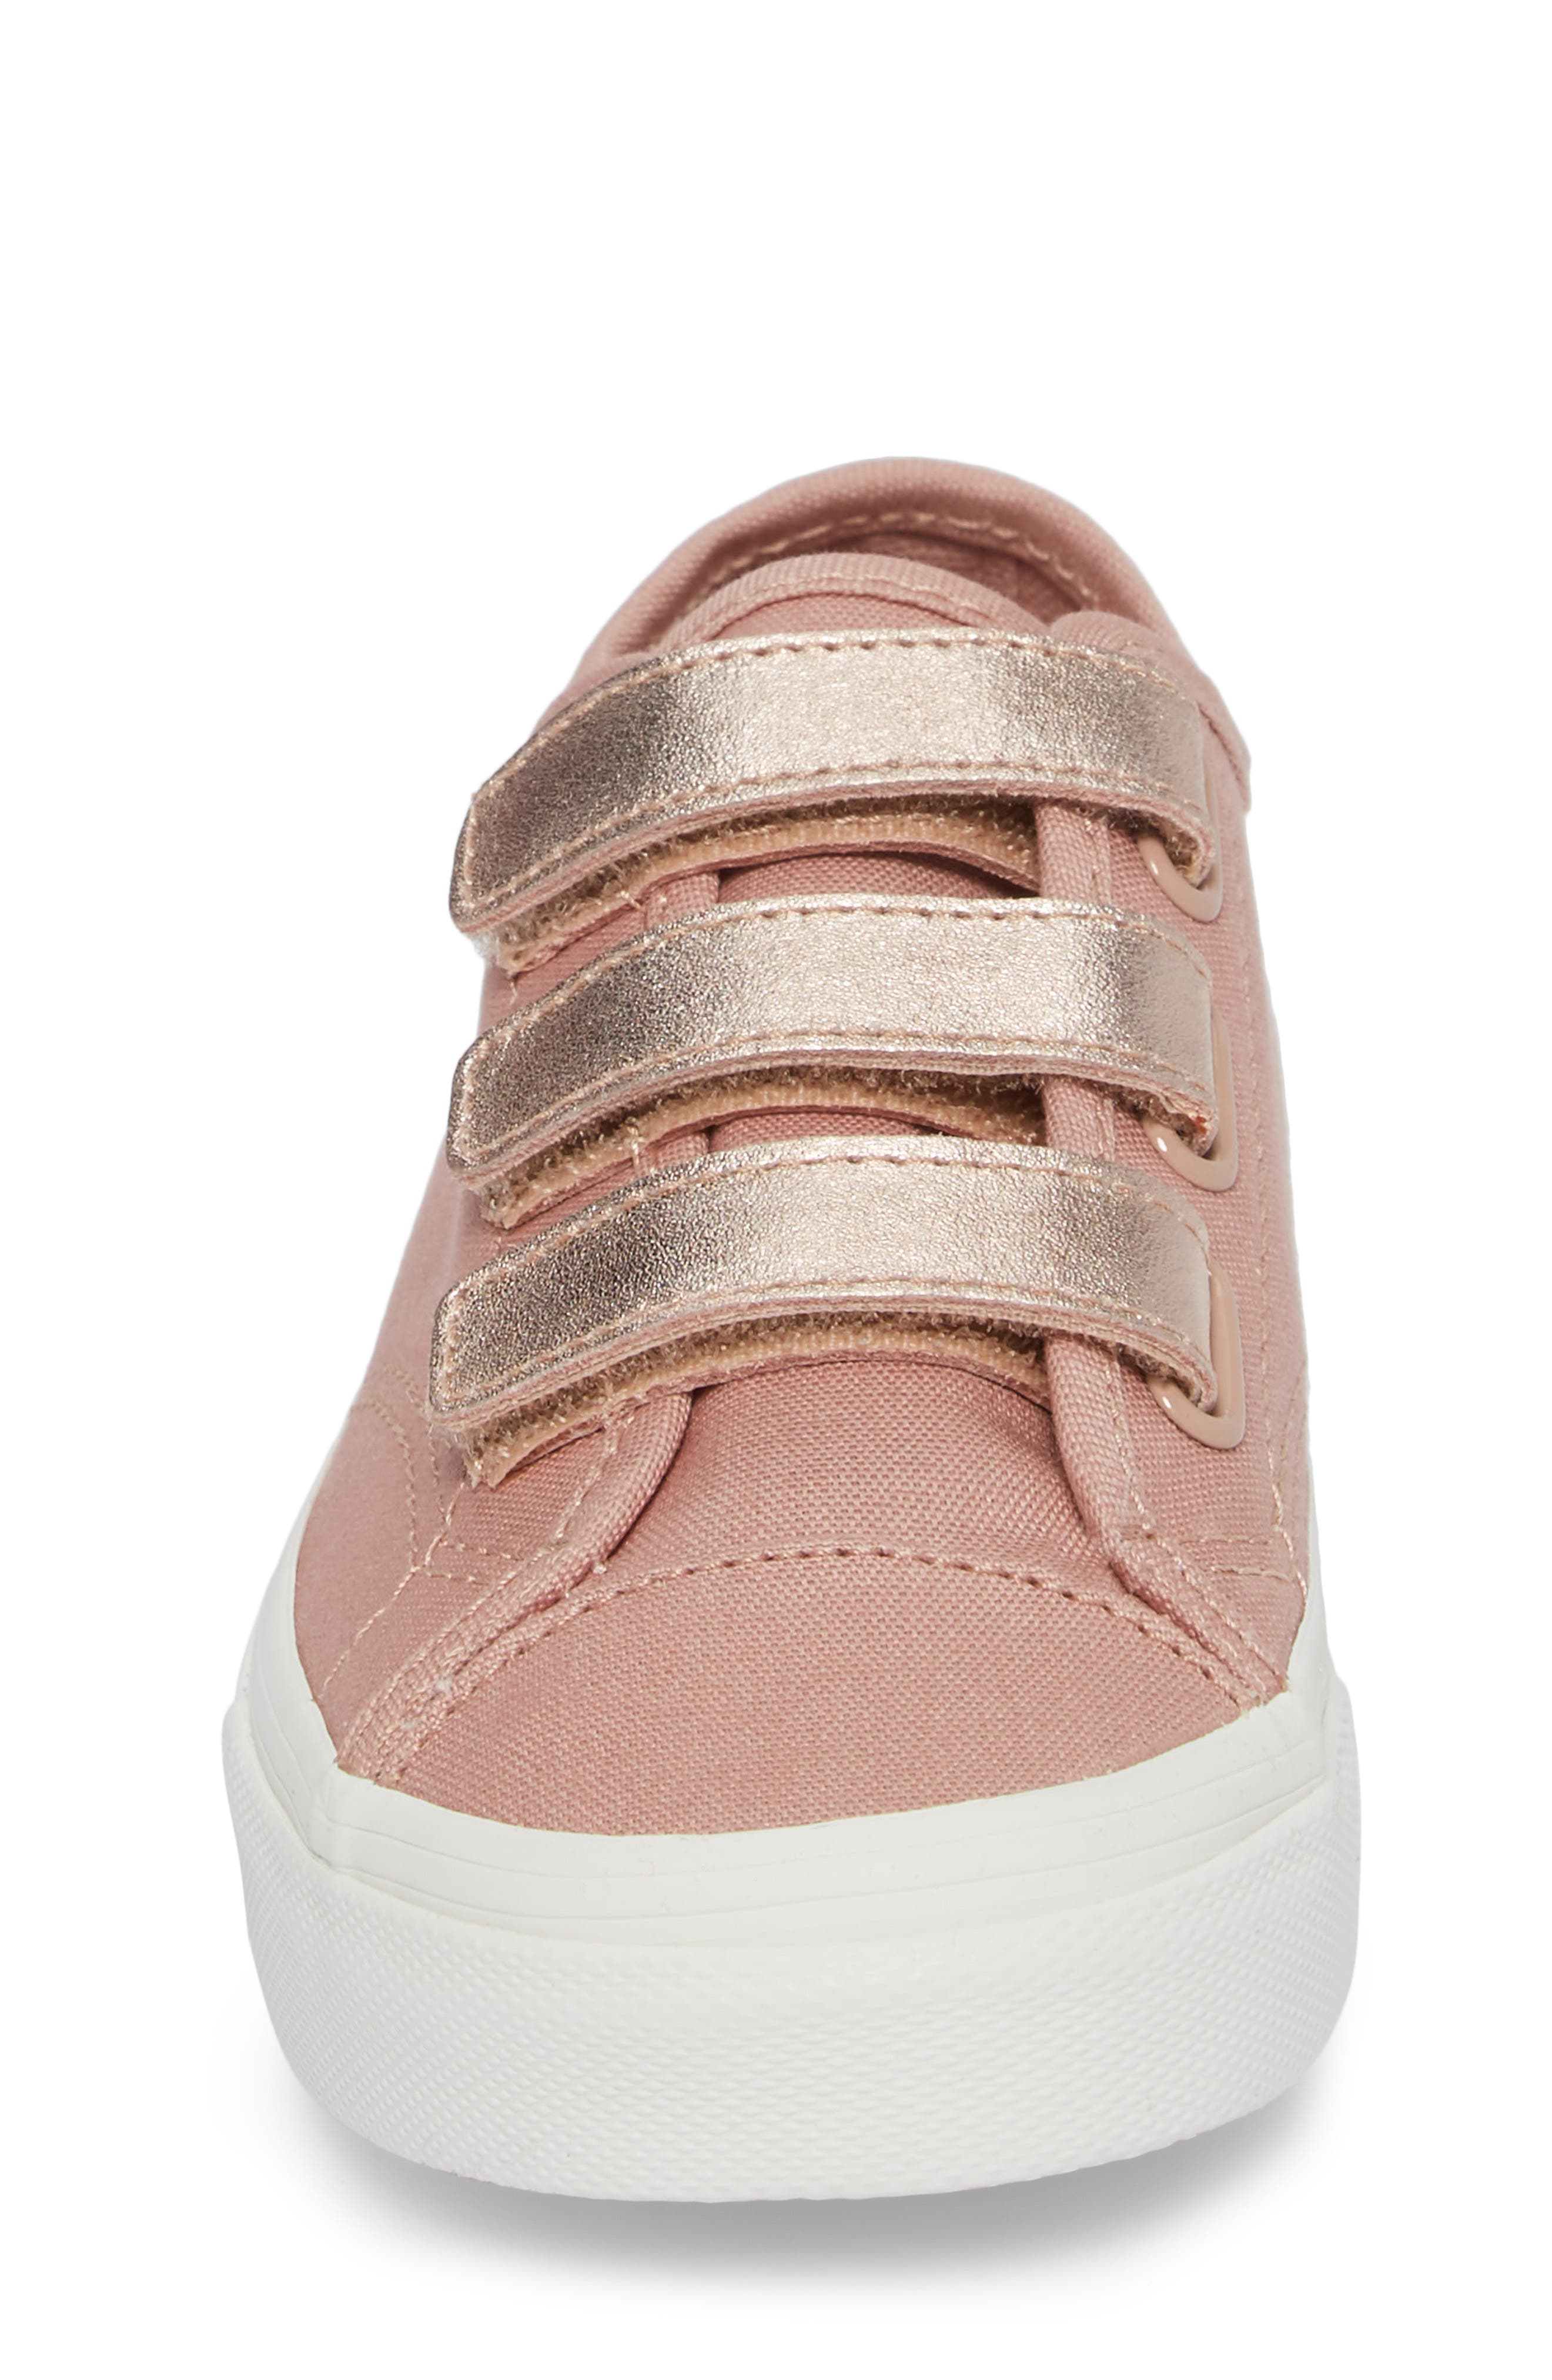 Style 23V Sneaker,                             Alternate thumbnail 4, color,                             Two-Tone Rose Gold Metallic